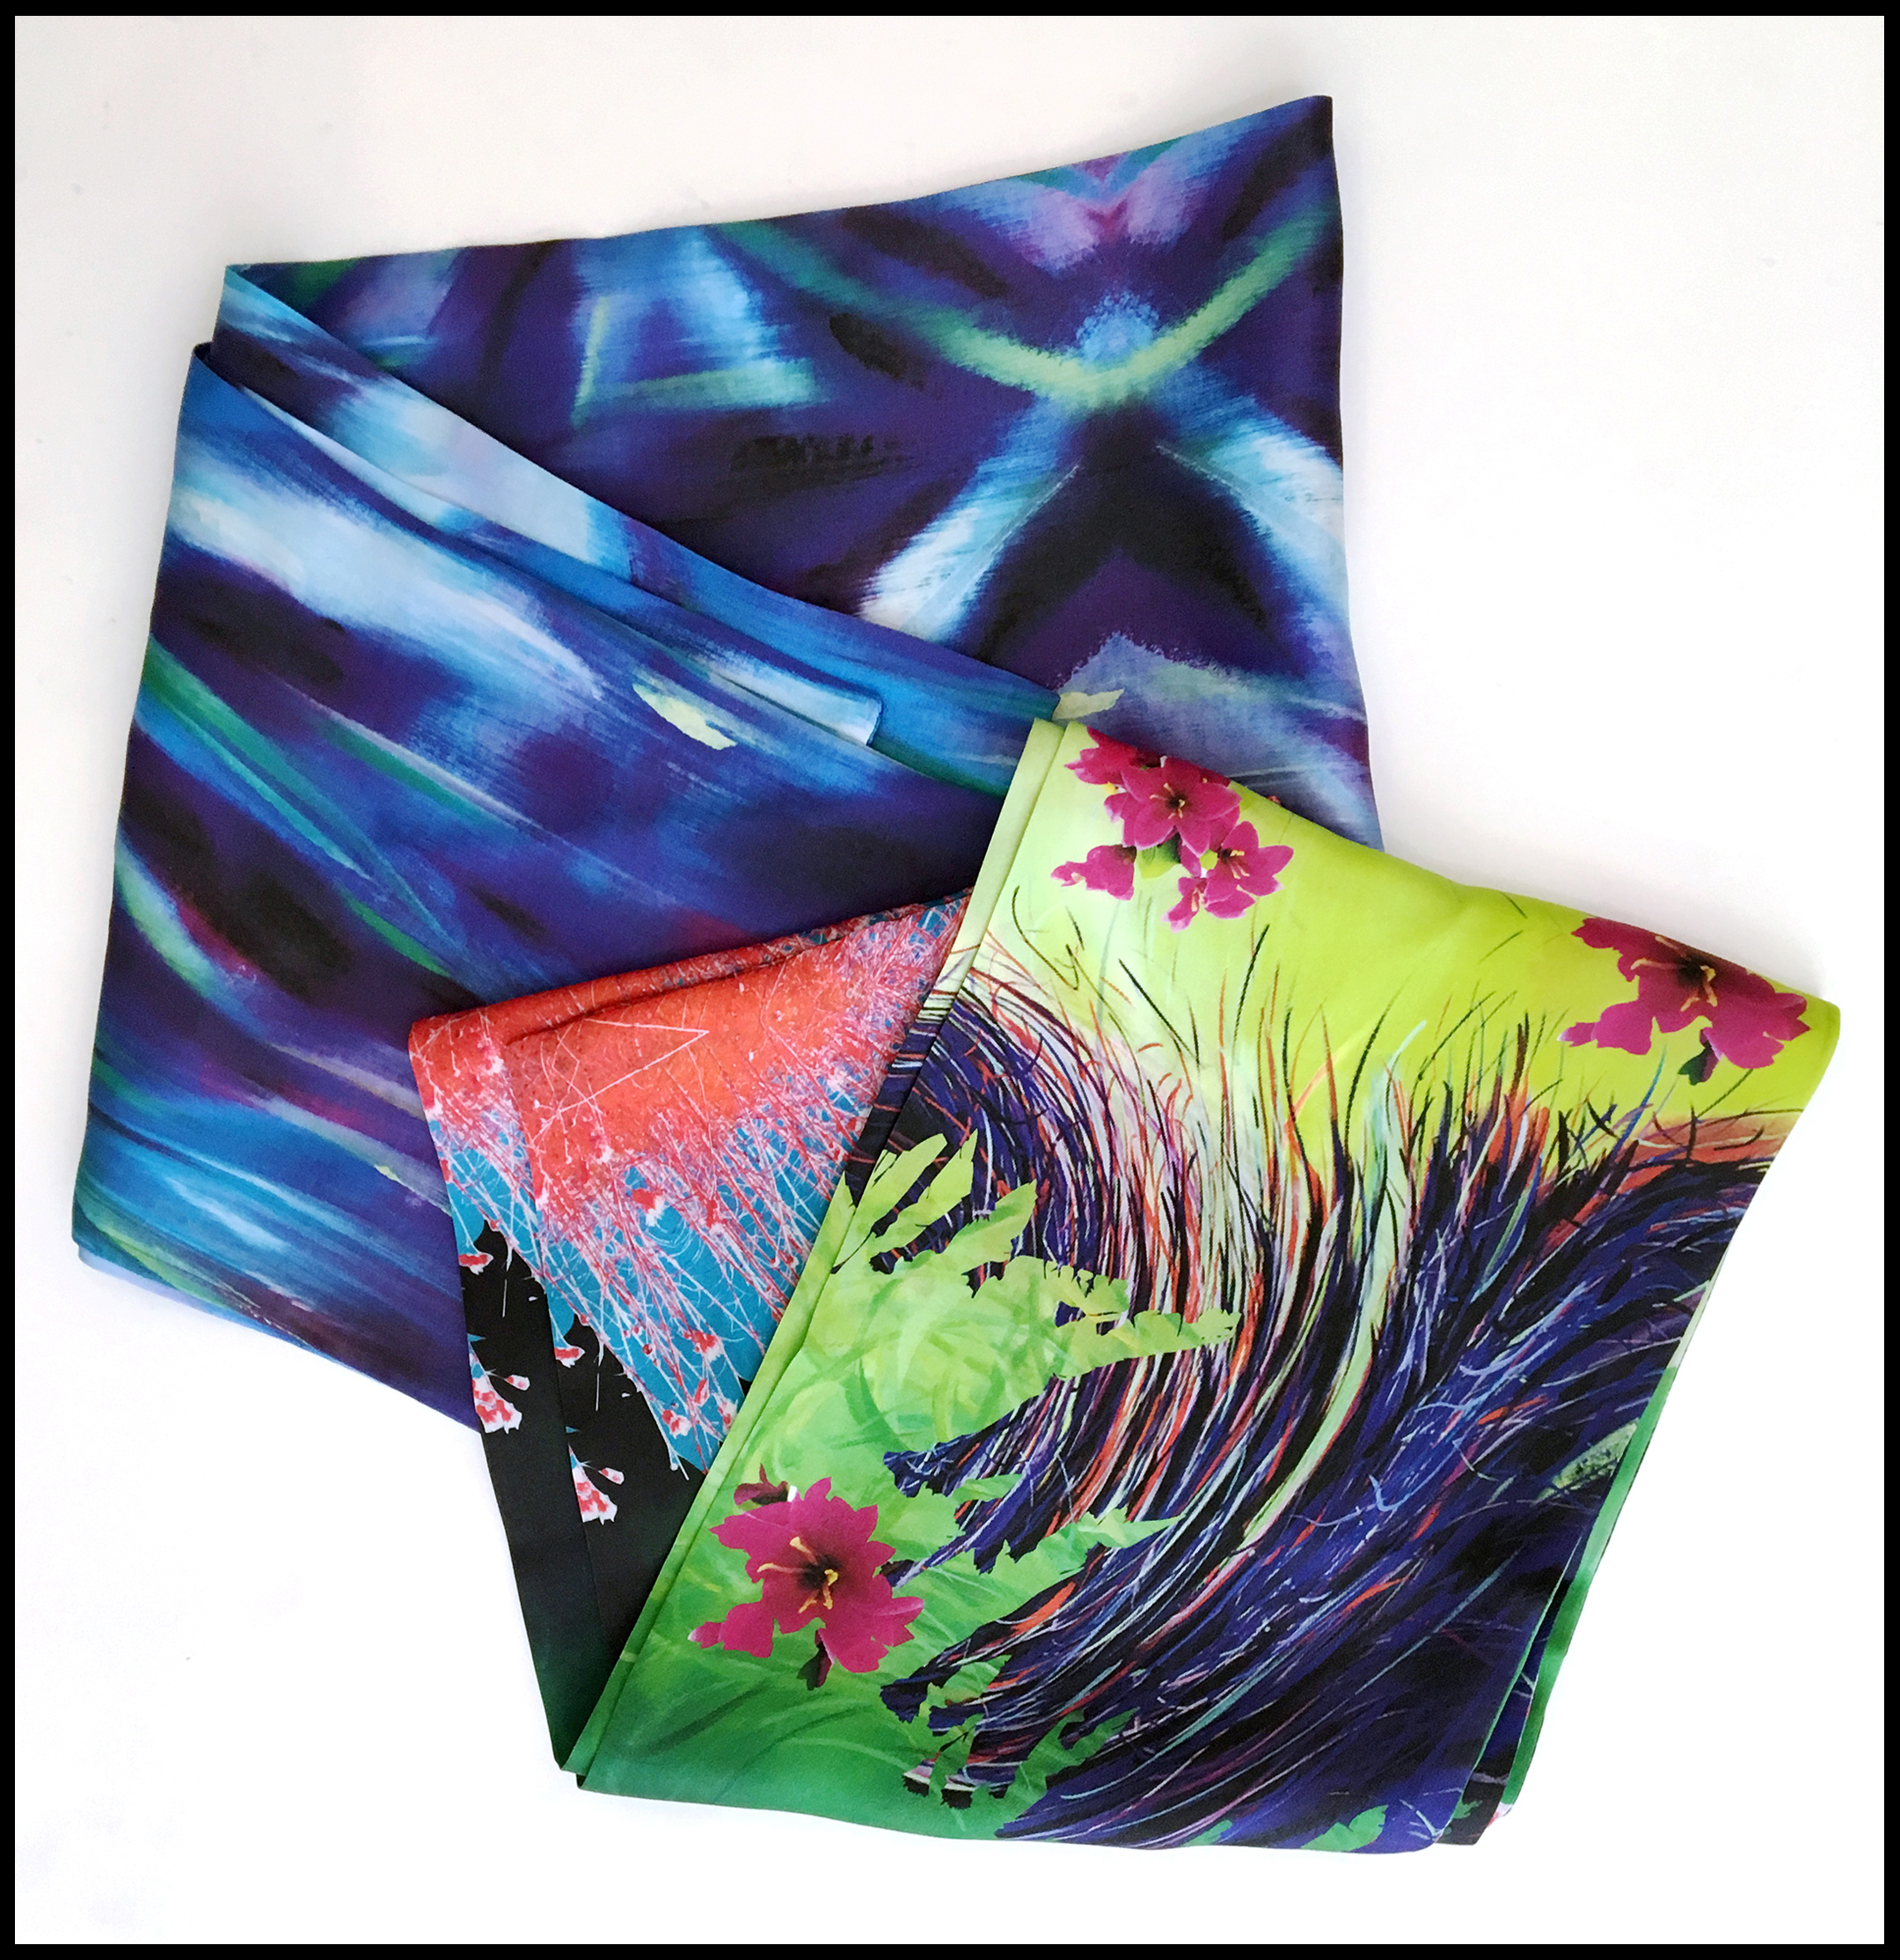 An image of silk scarves made by Ketta Ioannidou.